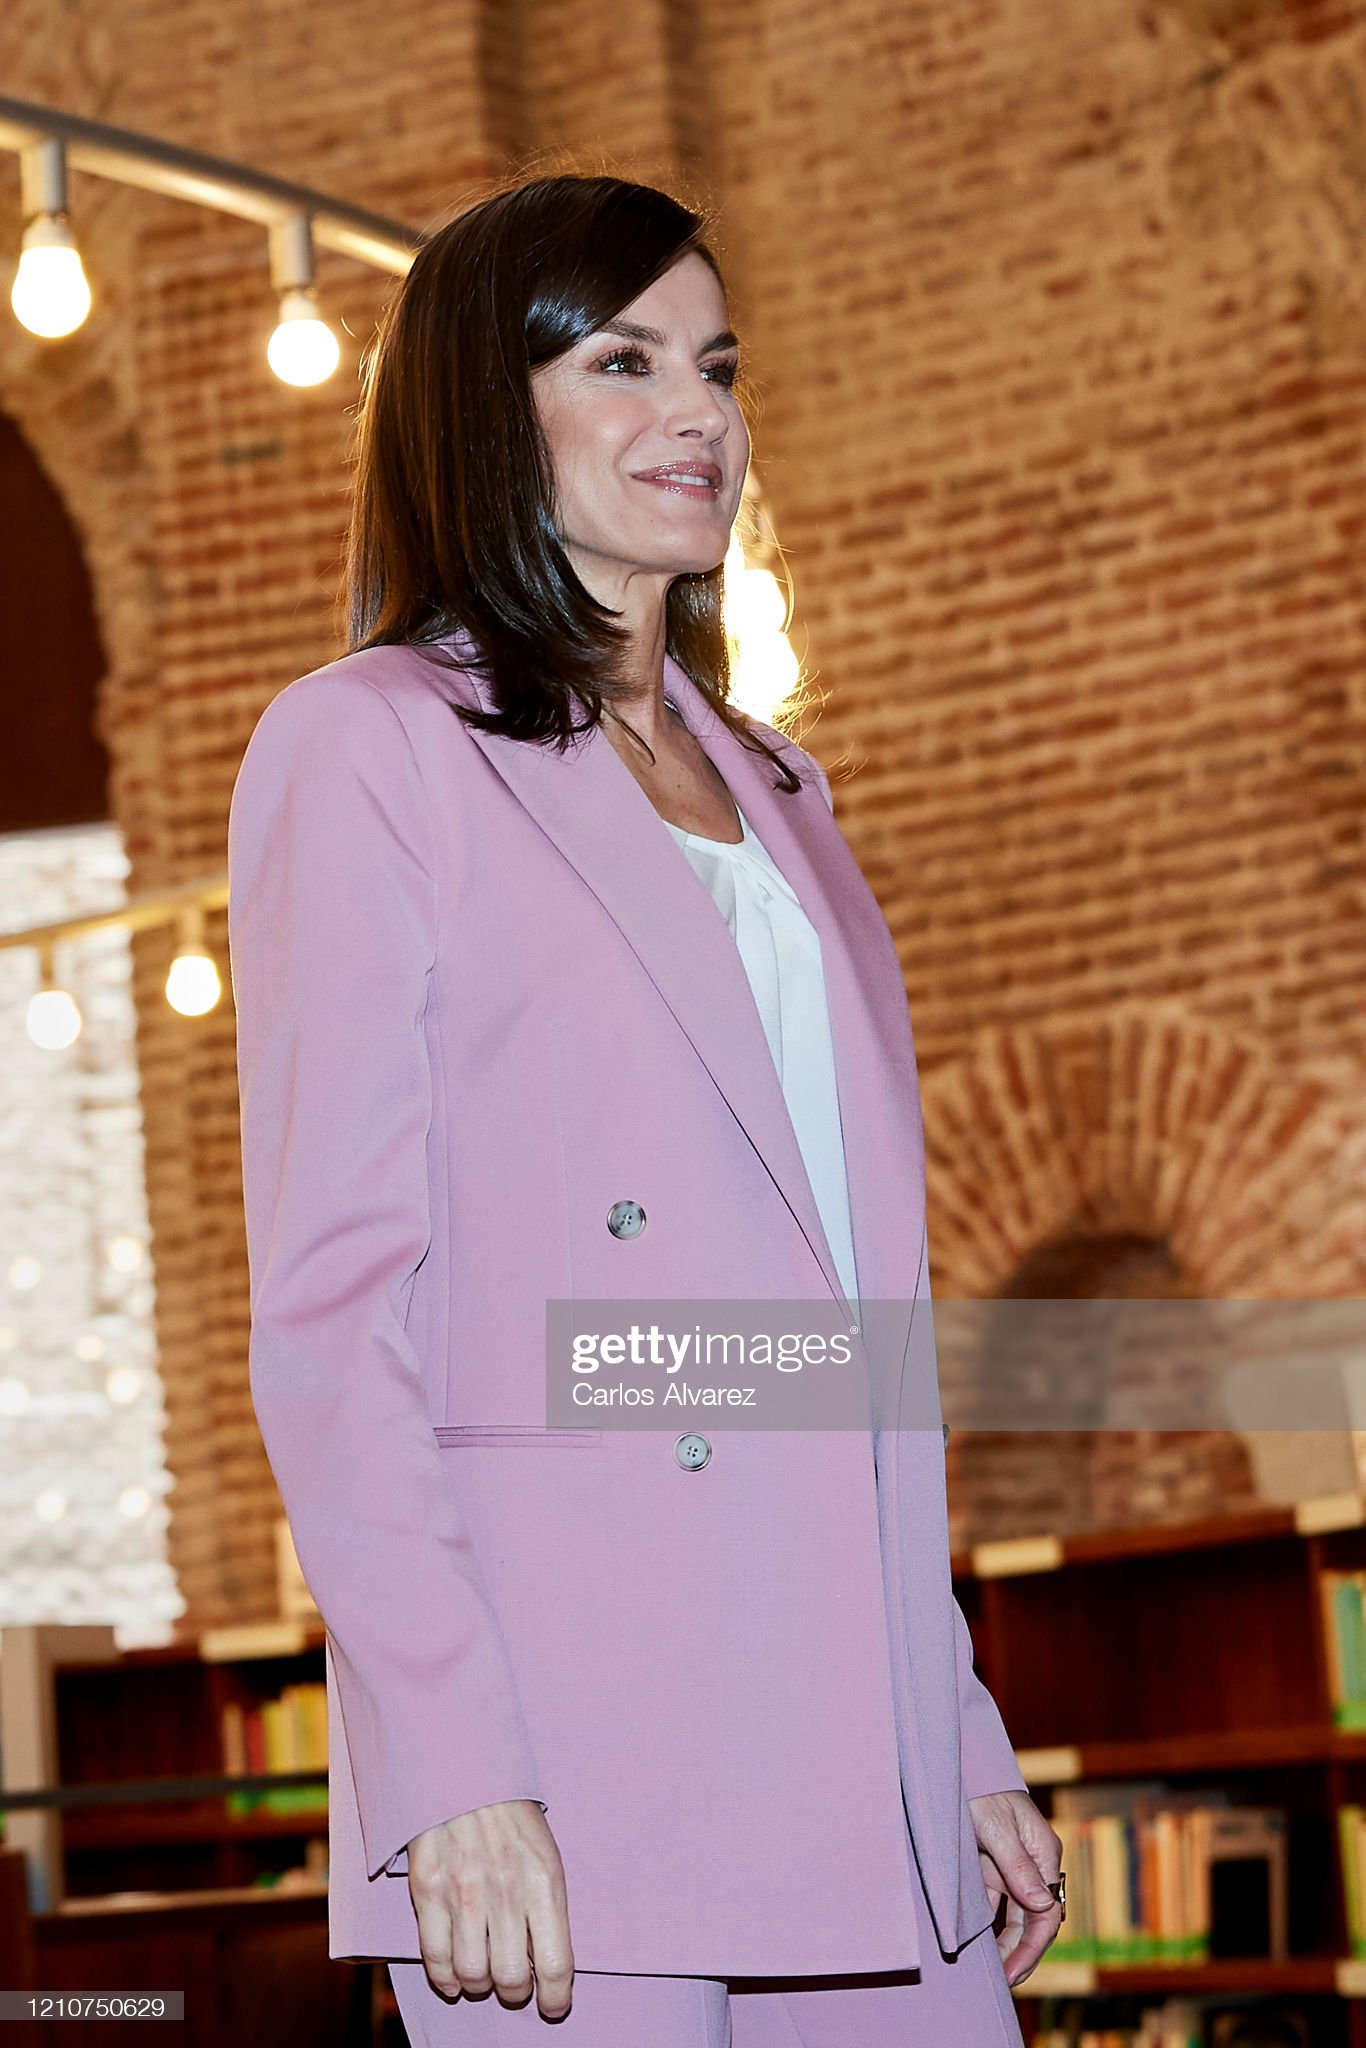 https://media.gettyimages.com/photos/queen-letizia-of-spain-attends-a-meeting-with-apramp-on-march-06-2020-picture-id1210750629?s=2048x2048